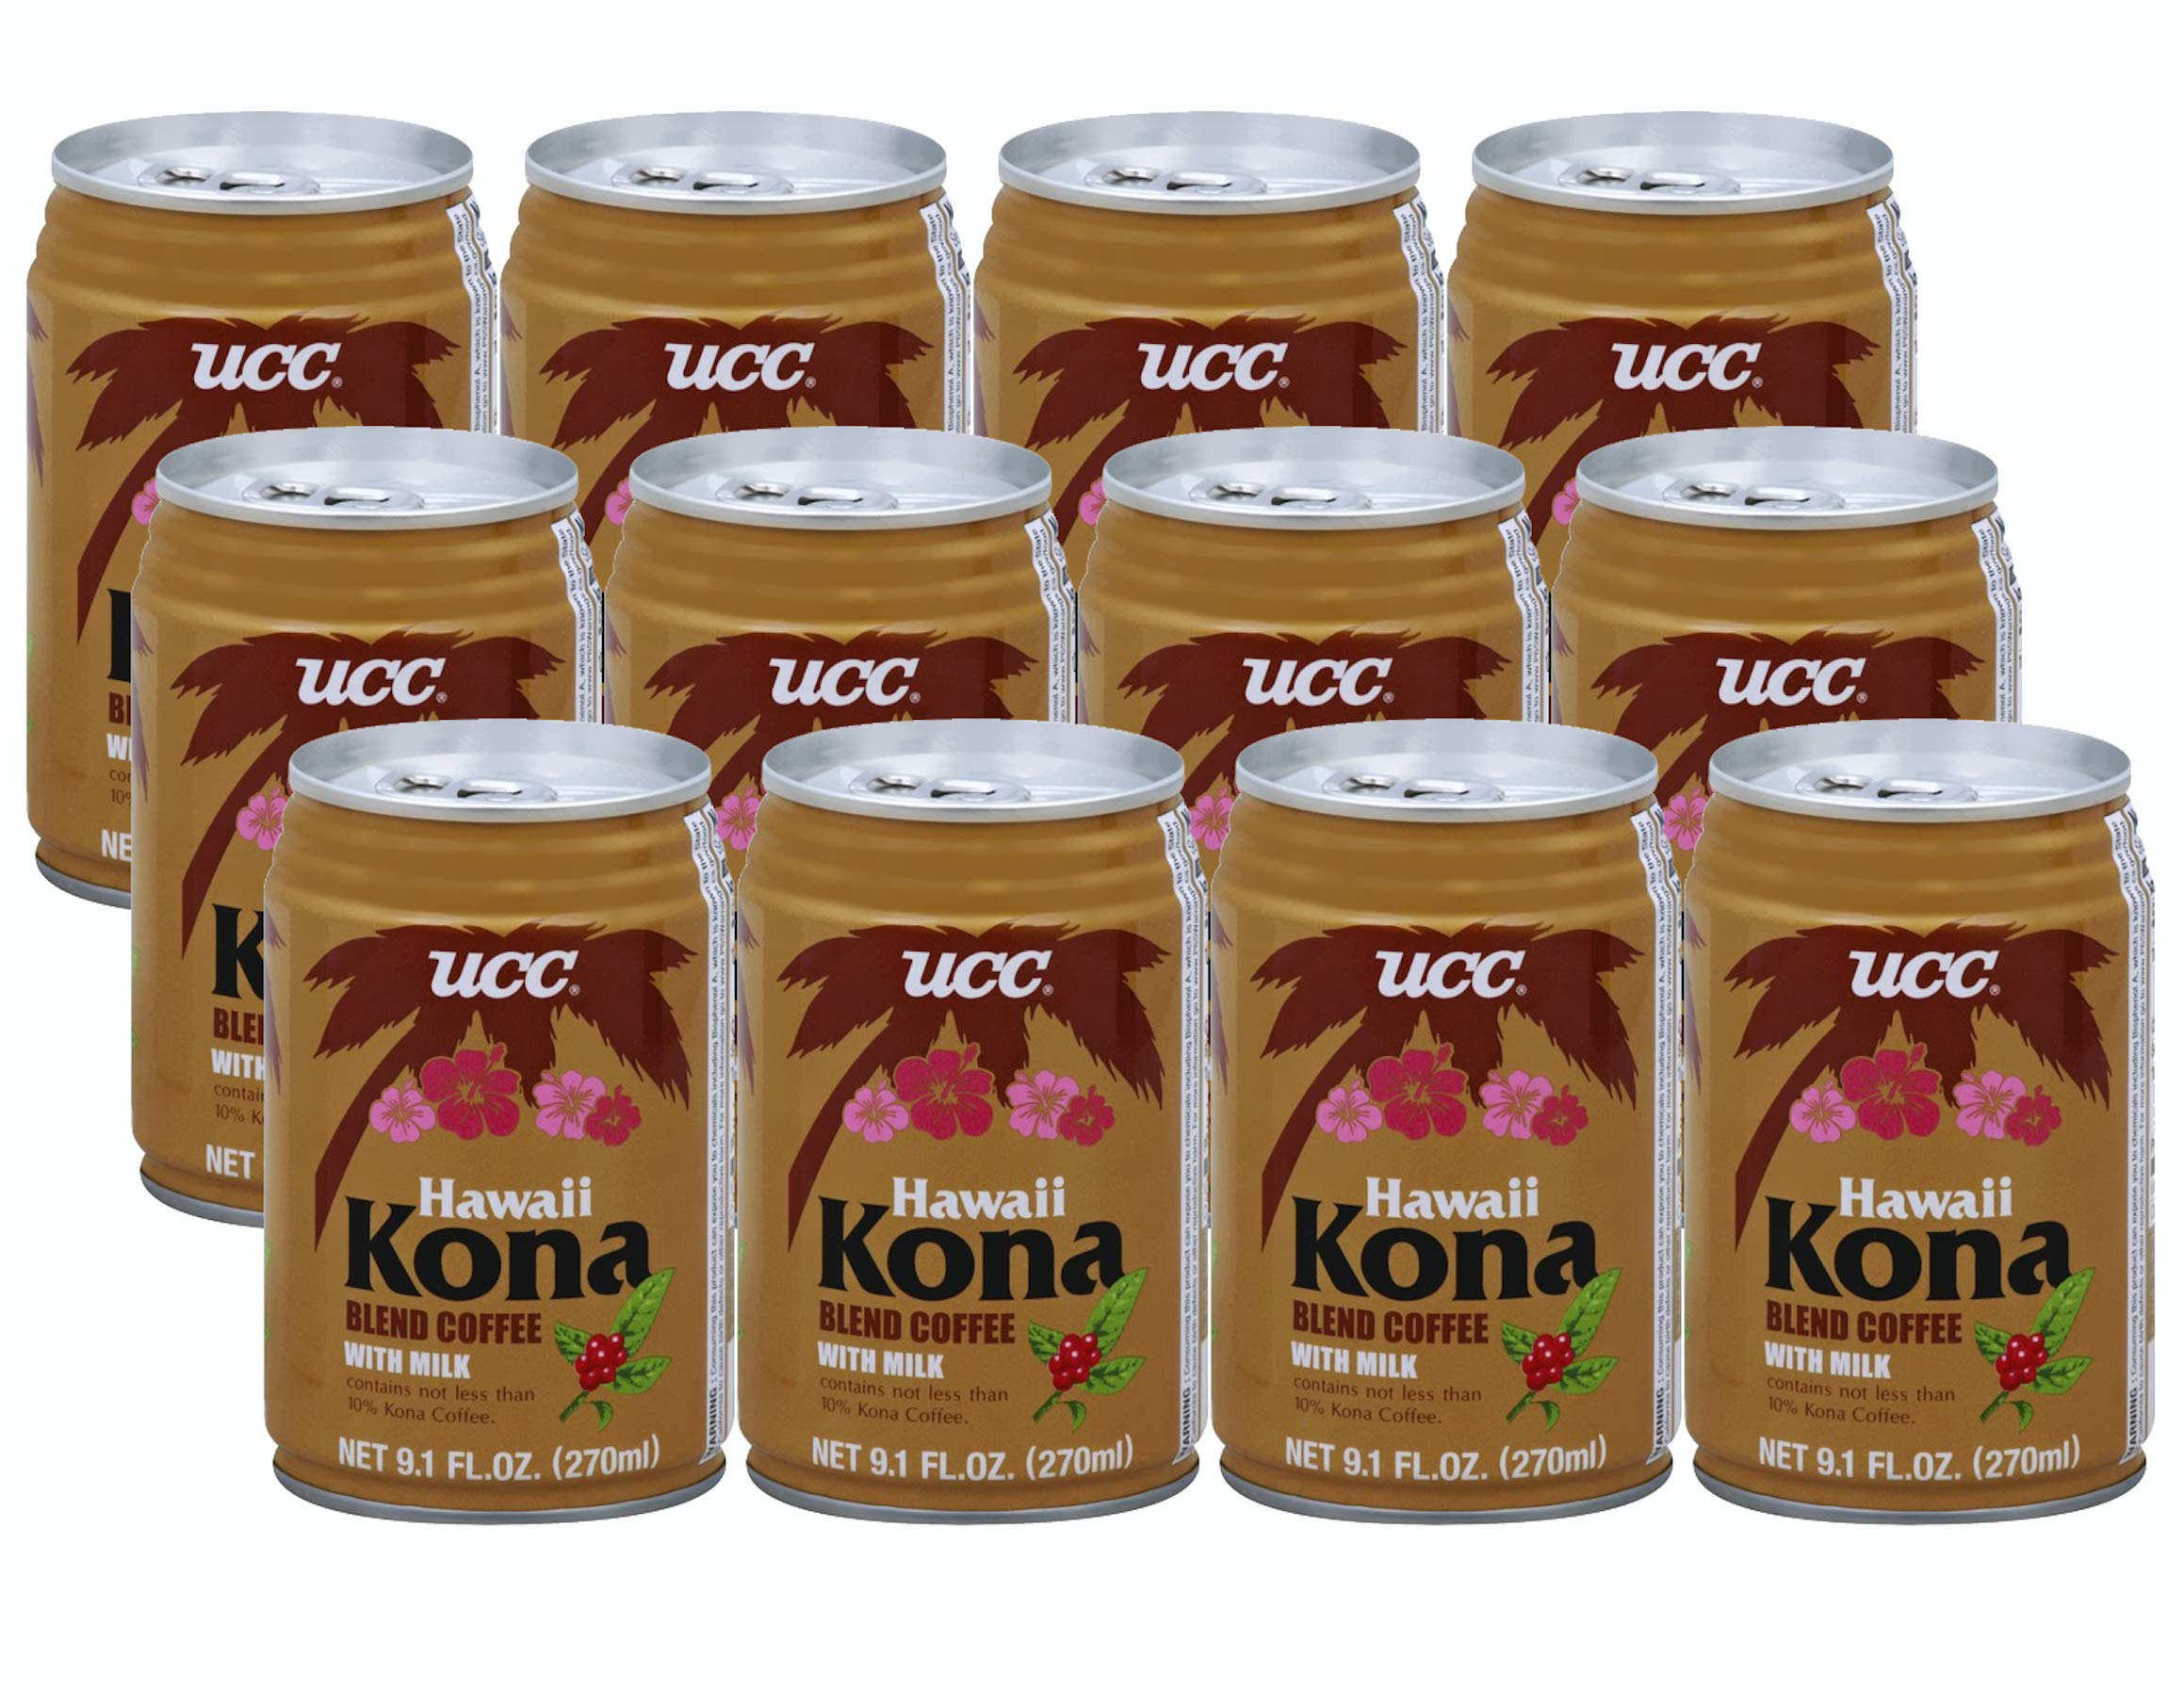 UCC Hawaii Kona Blend Coffee with Milk - 9.1 Fl Oz Cans | Pack of 12 by C&U